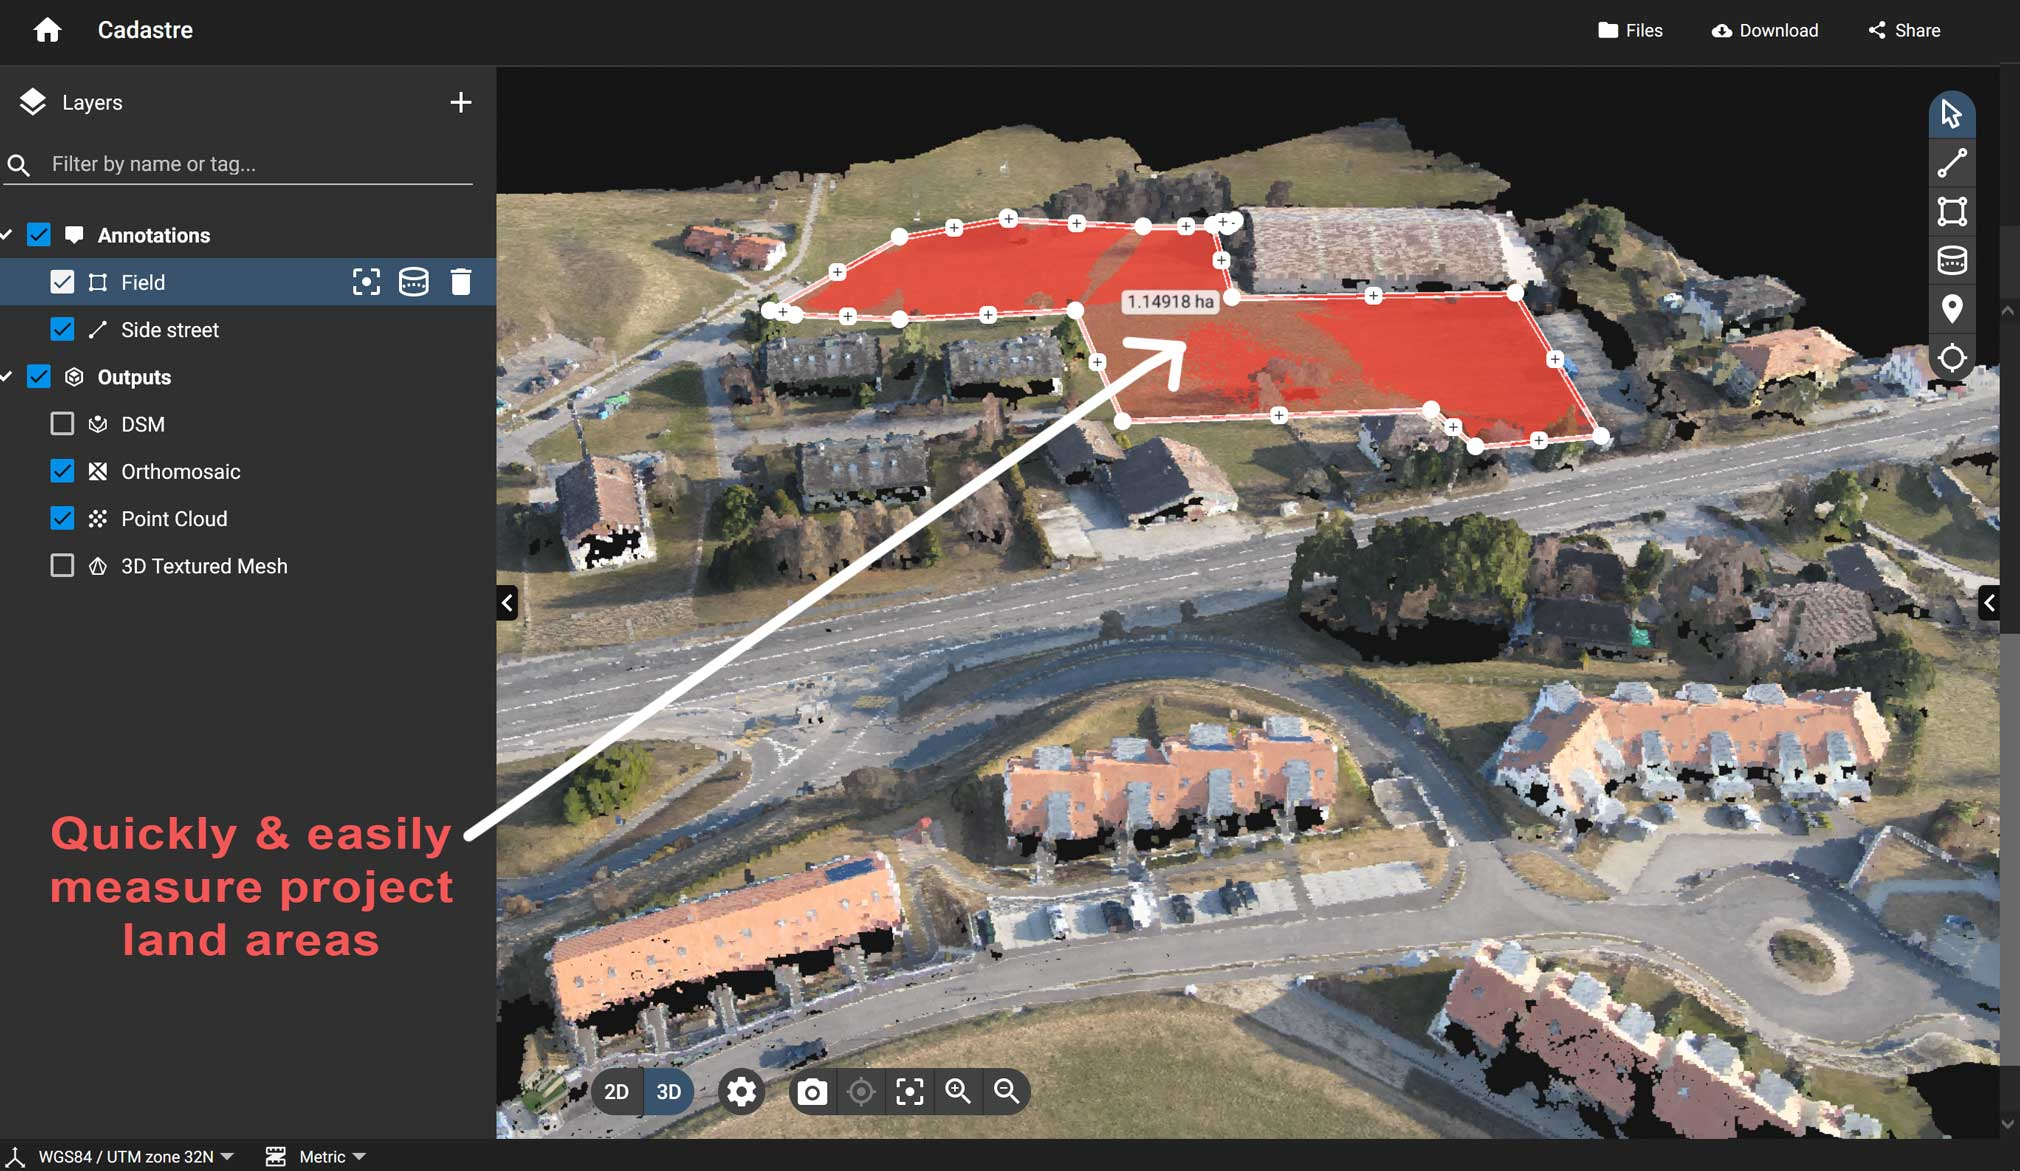 Photogrammetry measuring project areas